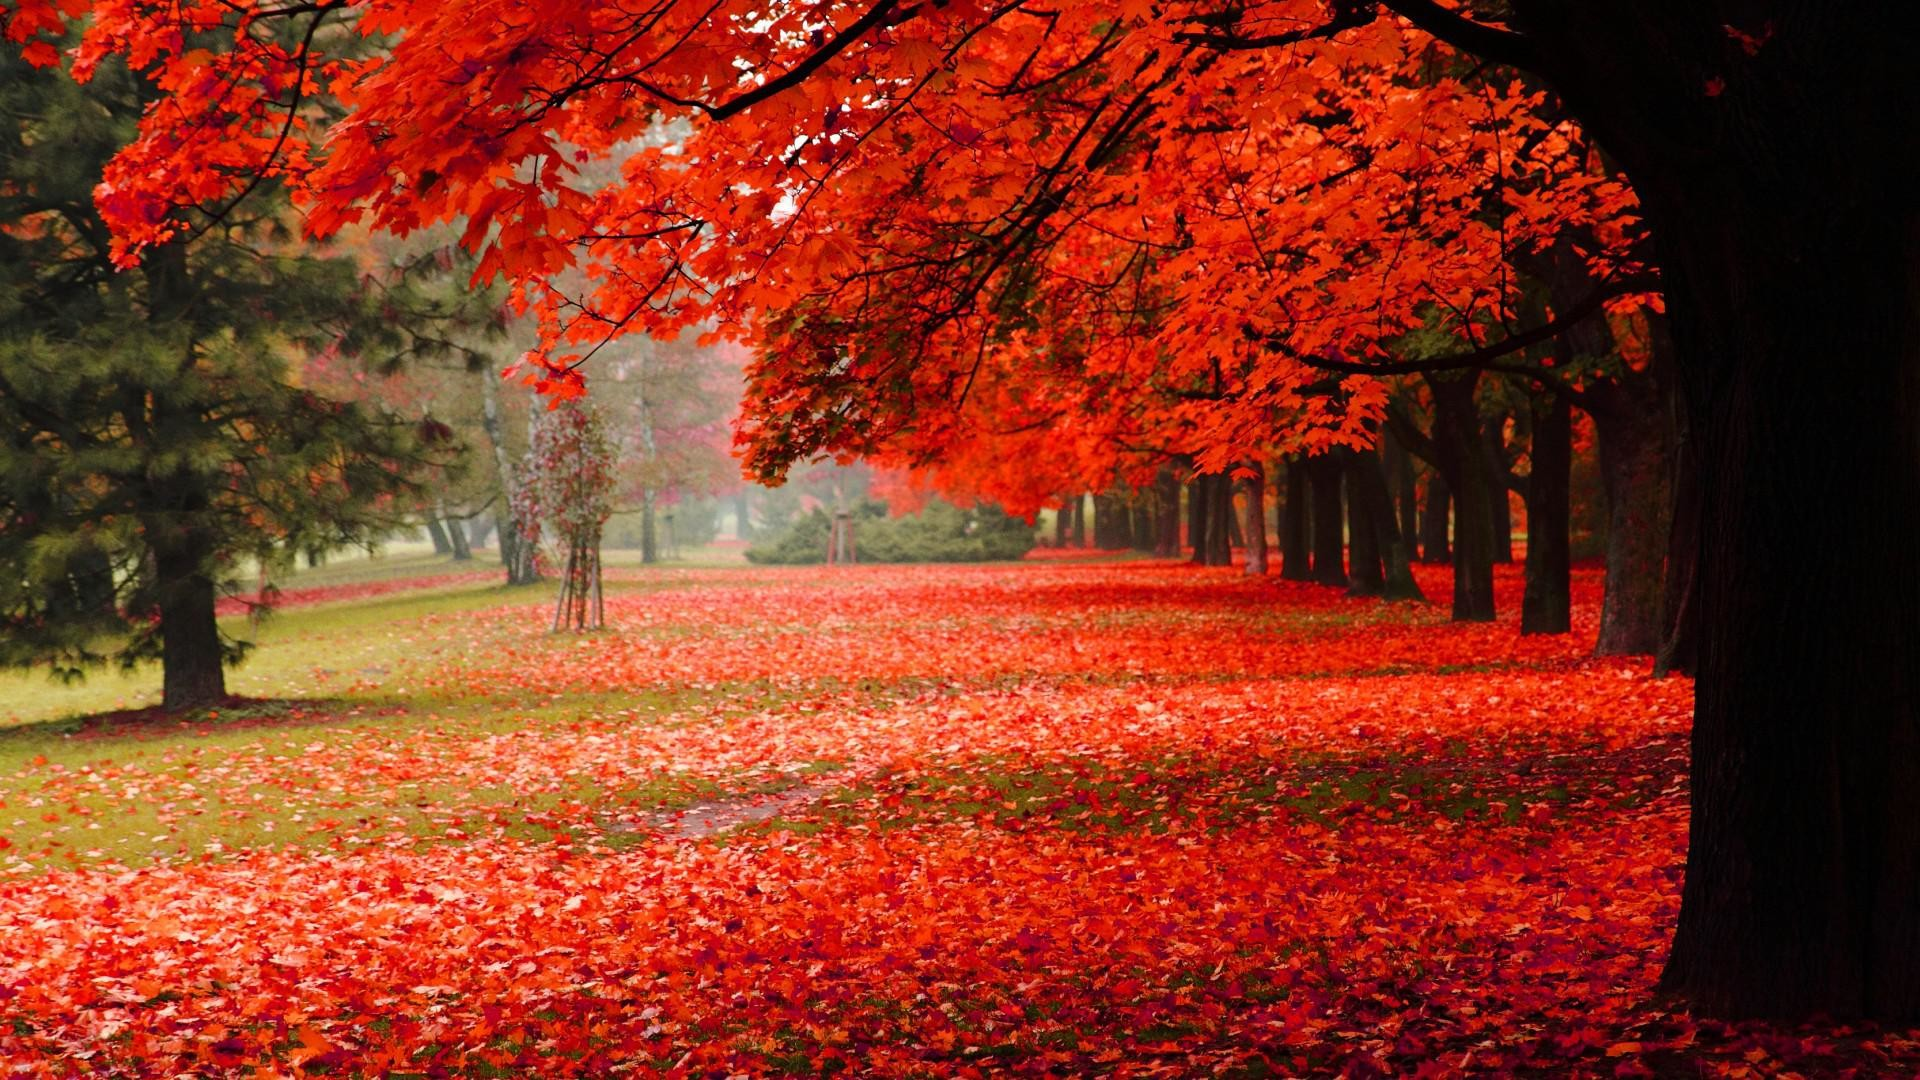 Fall Scenery Images.